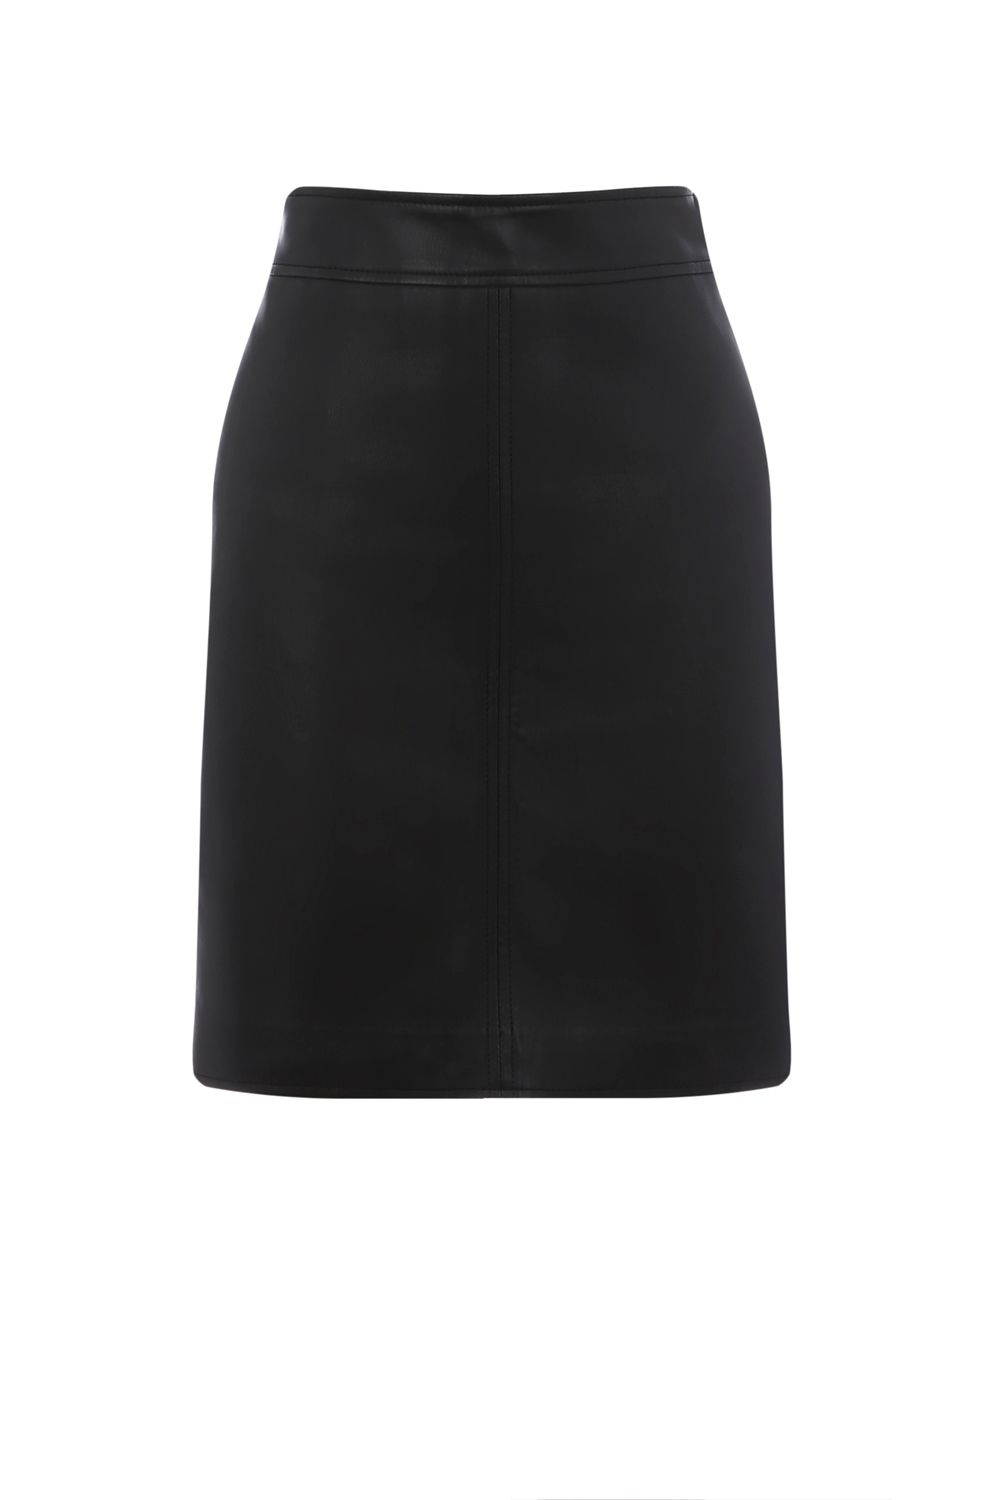 Warehouse Faux Leather Clean Skirt, Black